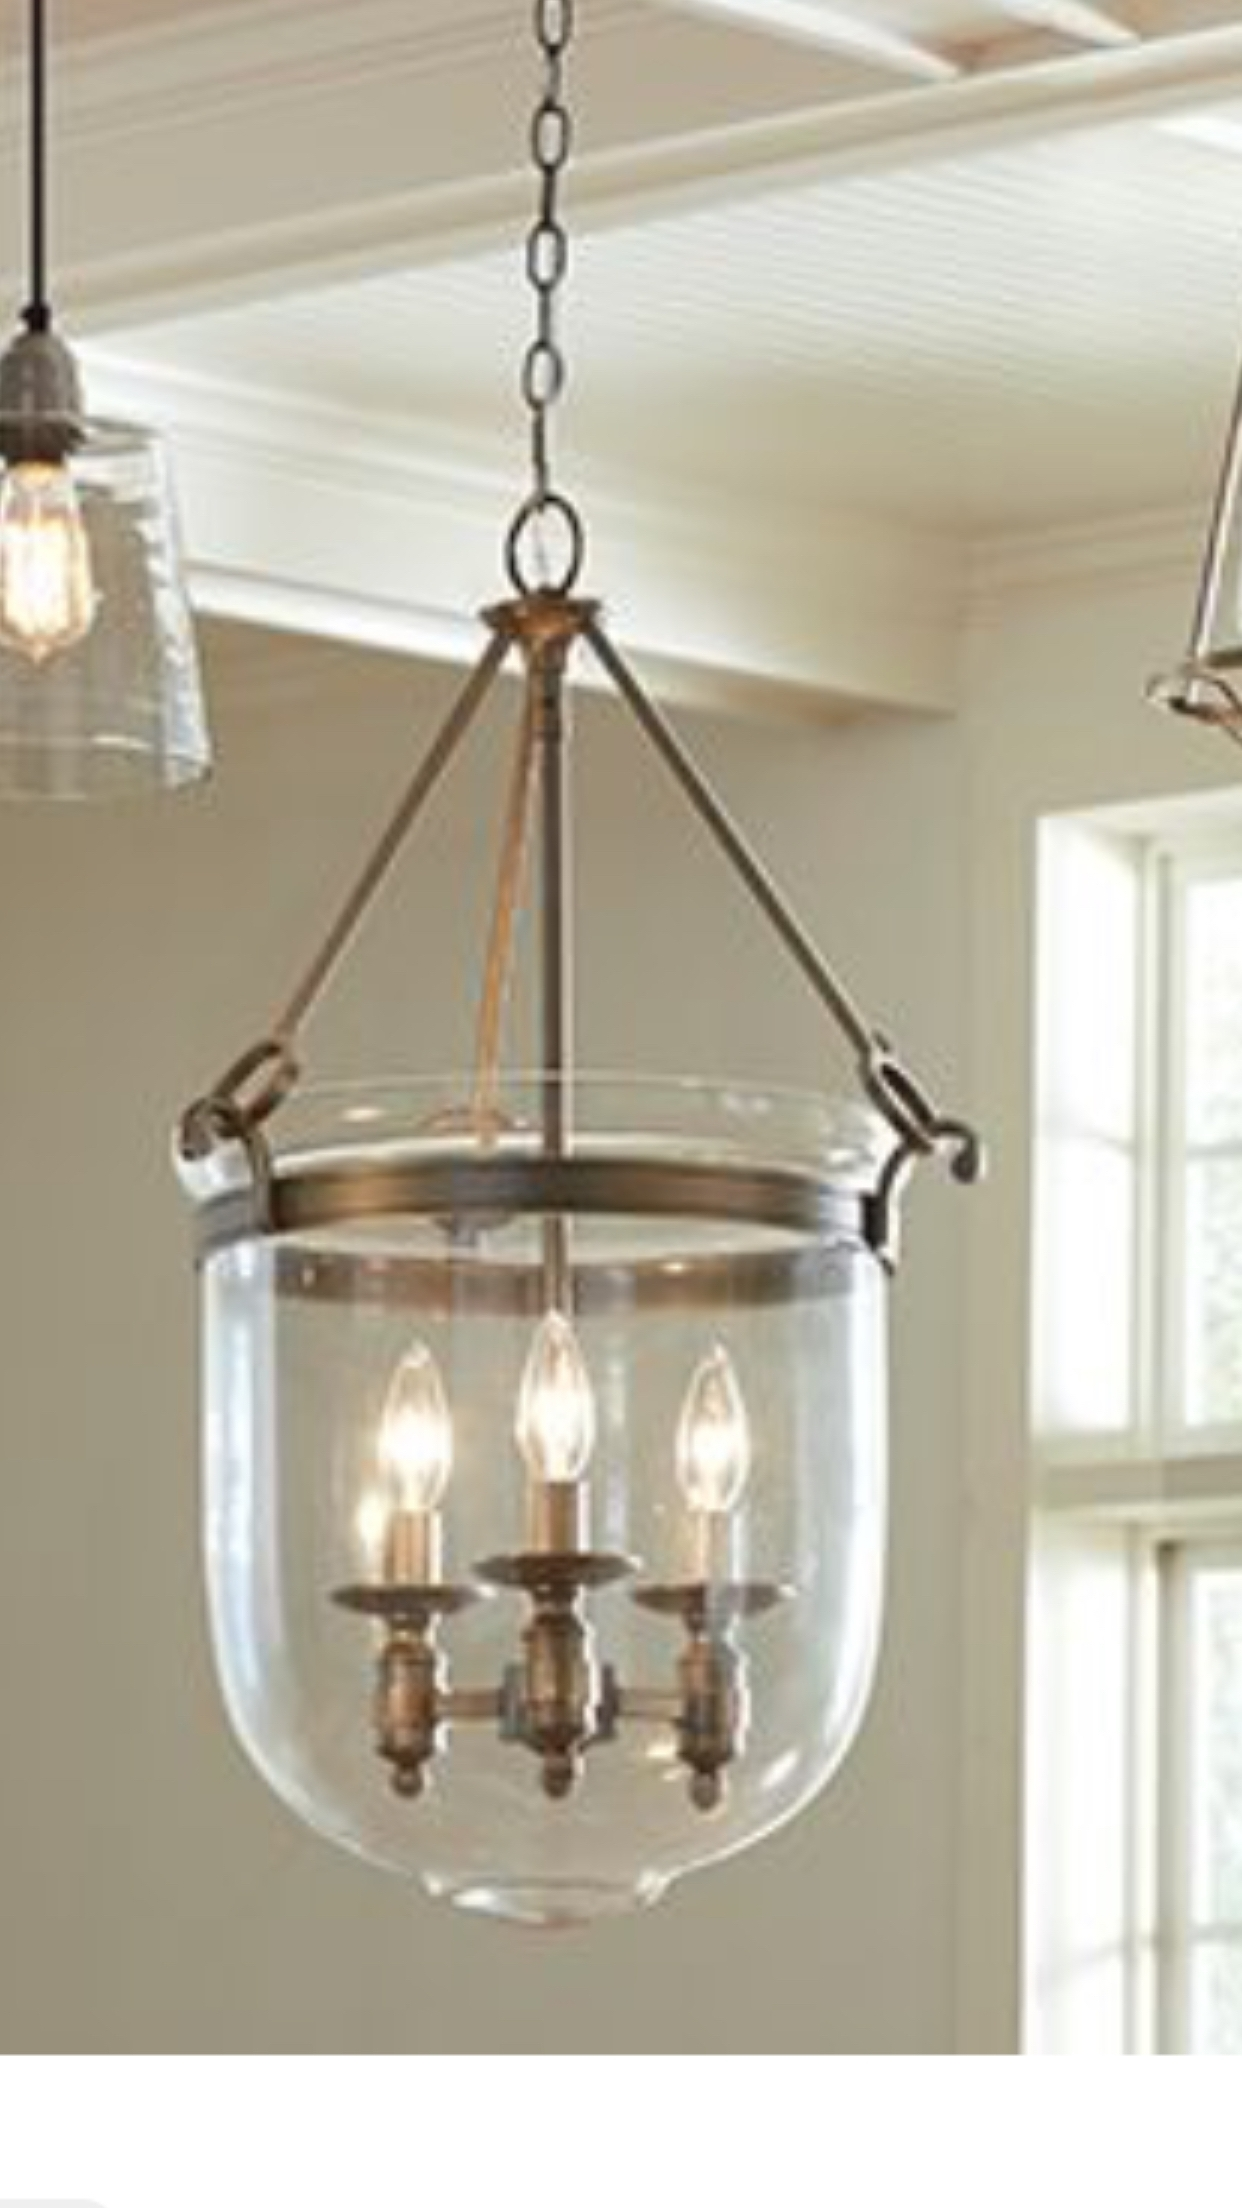 Best And Newest Modern Chandeliers For Low Ceilings With Regard To Light Fixture : 2 Story Chandelier 2 Story Foyer Chandelier Height (View 2 of 20)